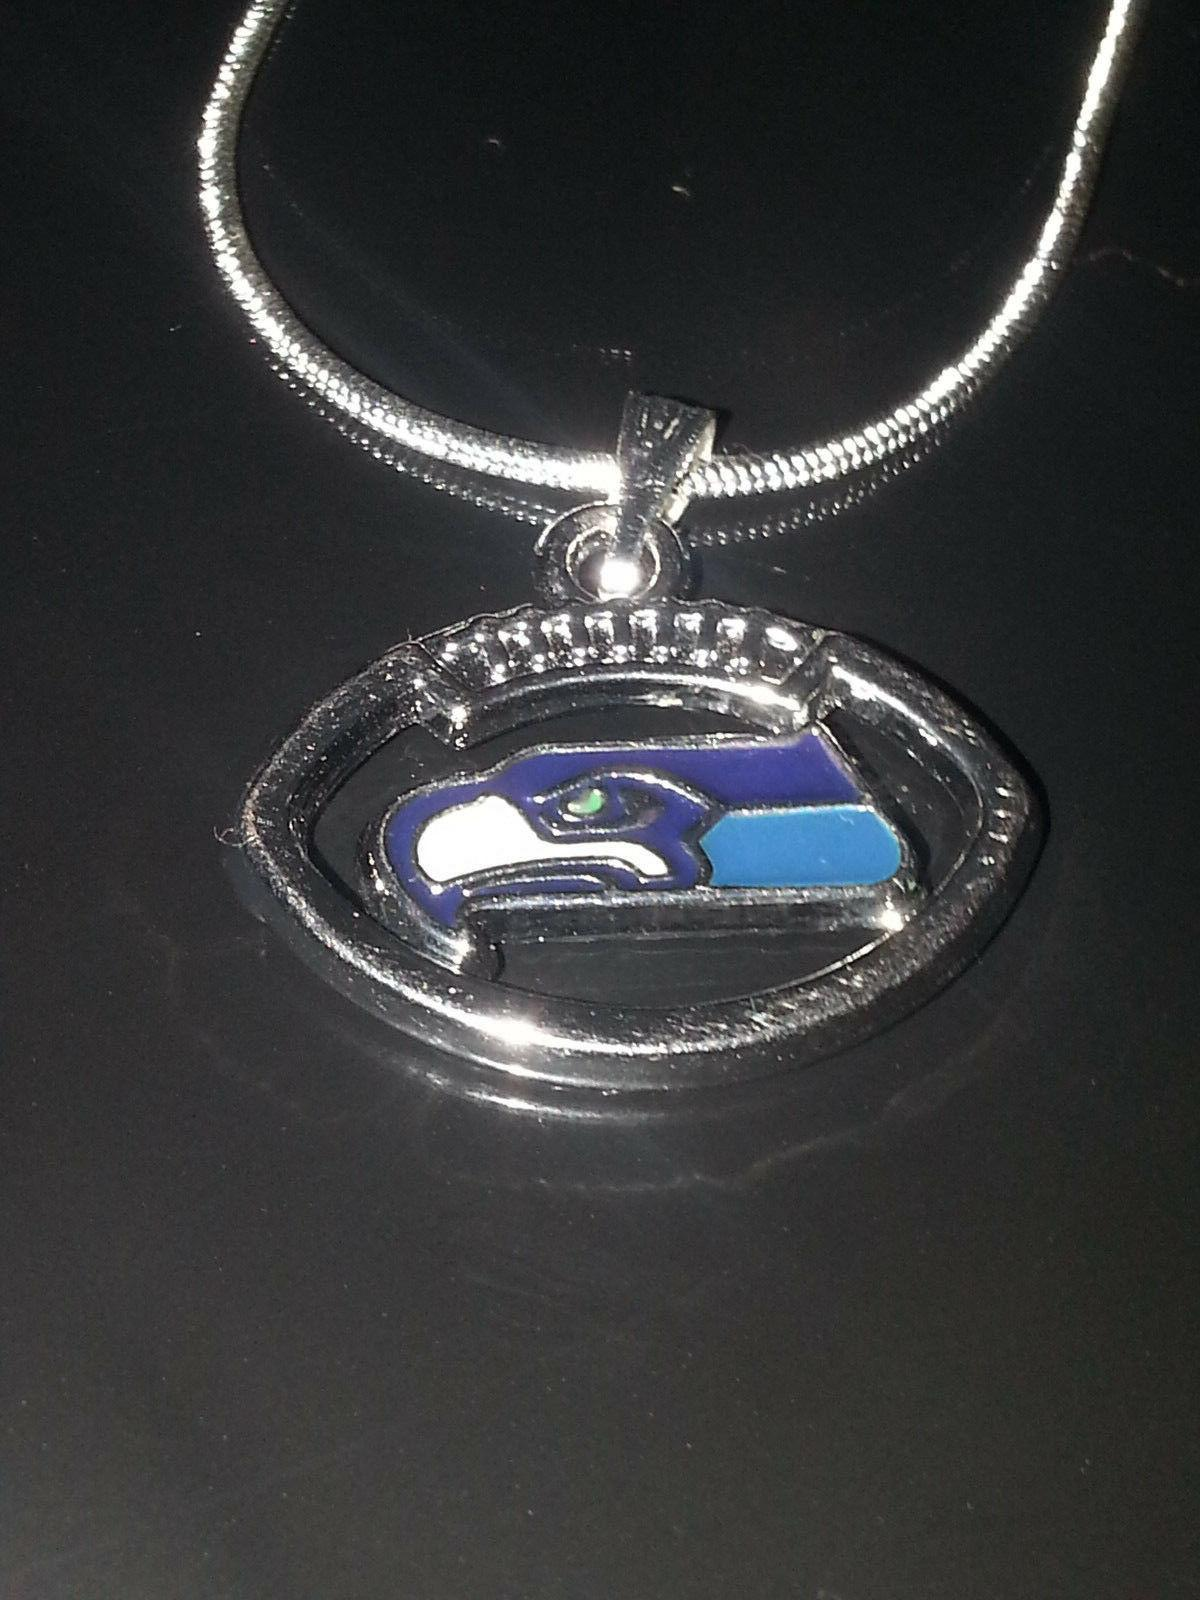 seattle seahawks necklace pendant sterling silver chain